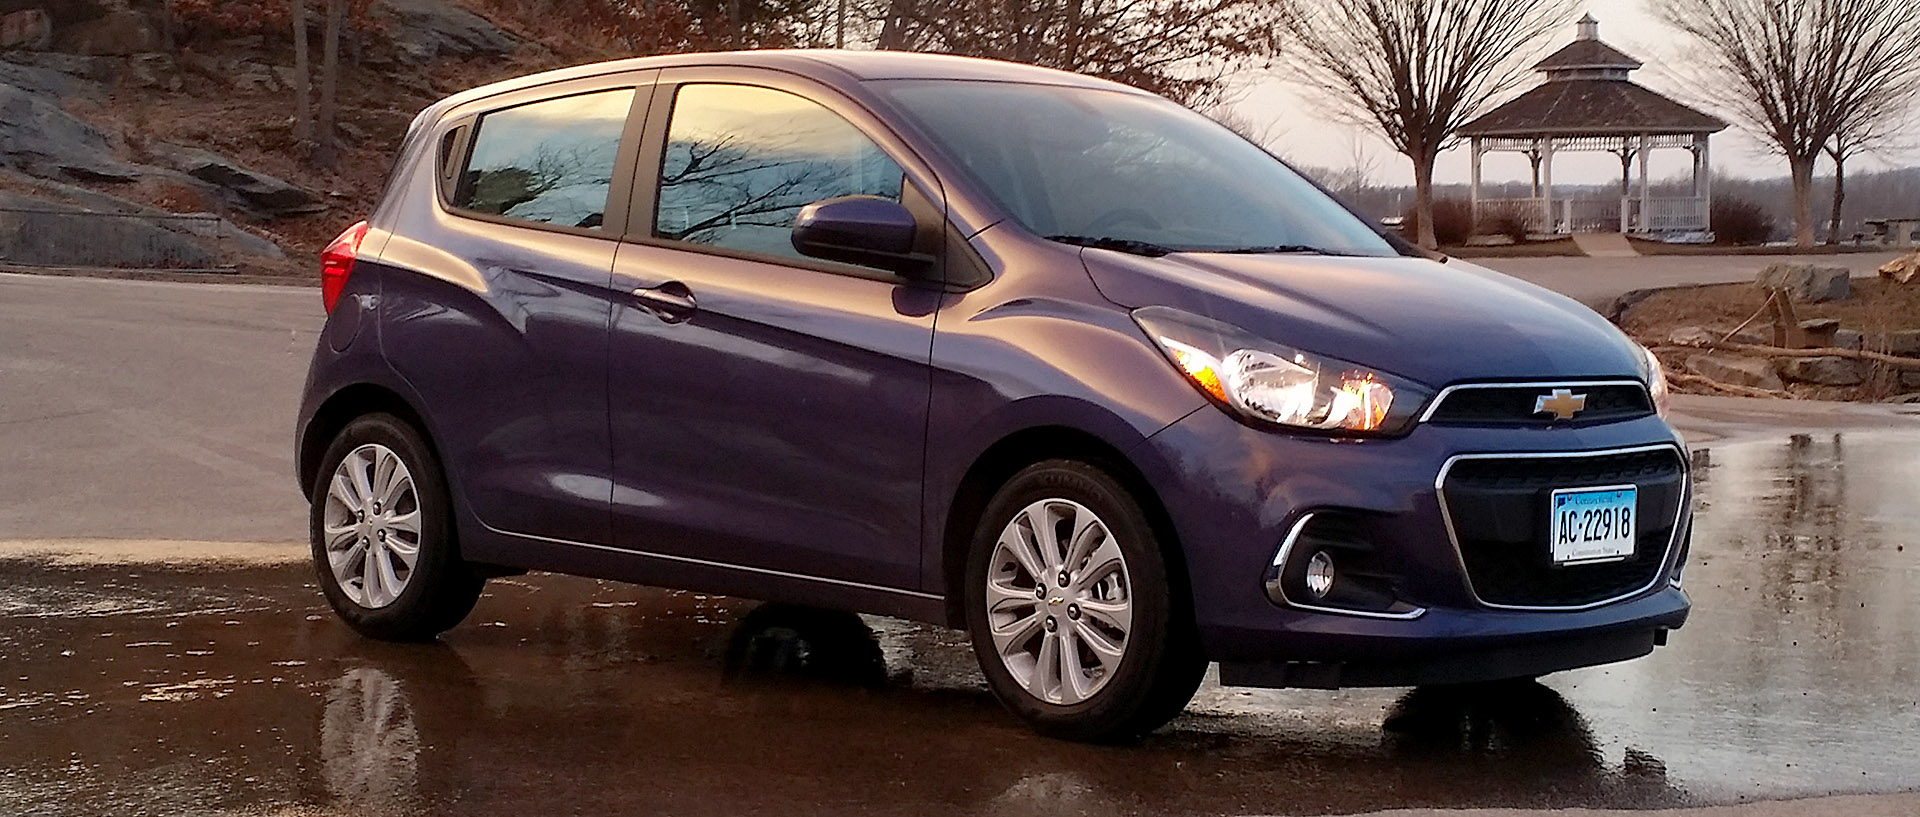 2016 Chevrolet Spark Grows Up And Gains Manners